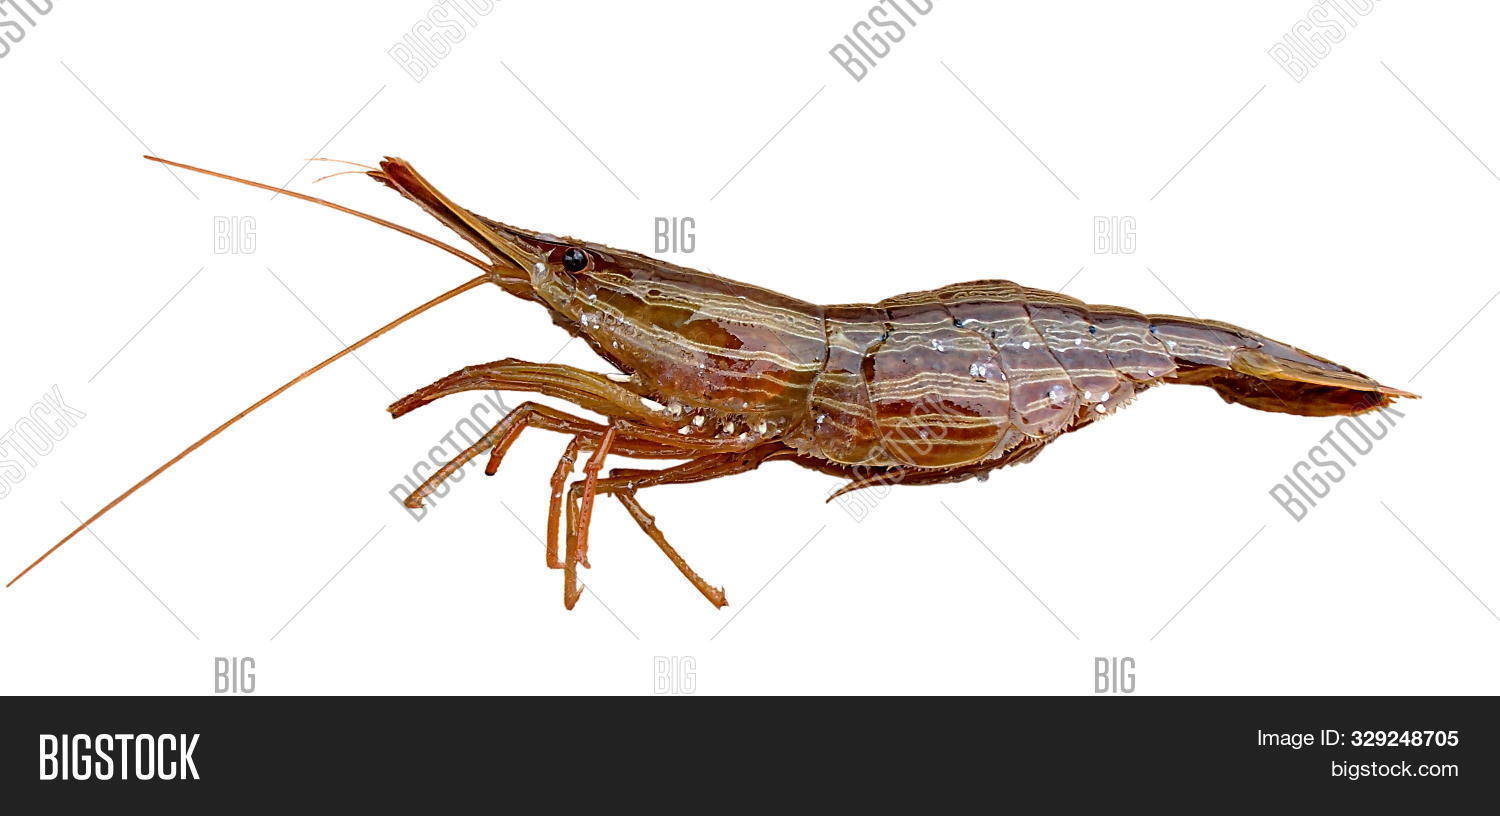 Alive Shrimp Isolated Image Photo Free Trial Bigstock